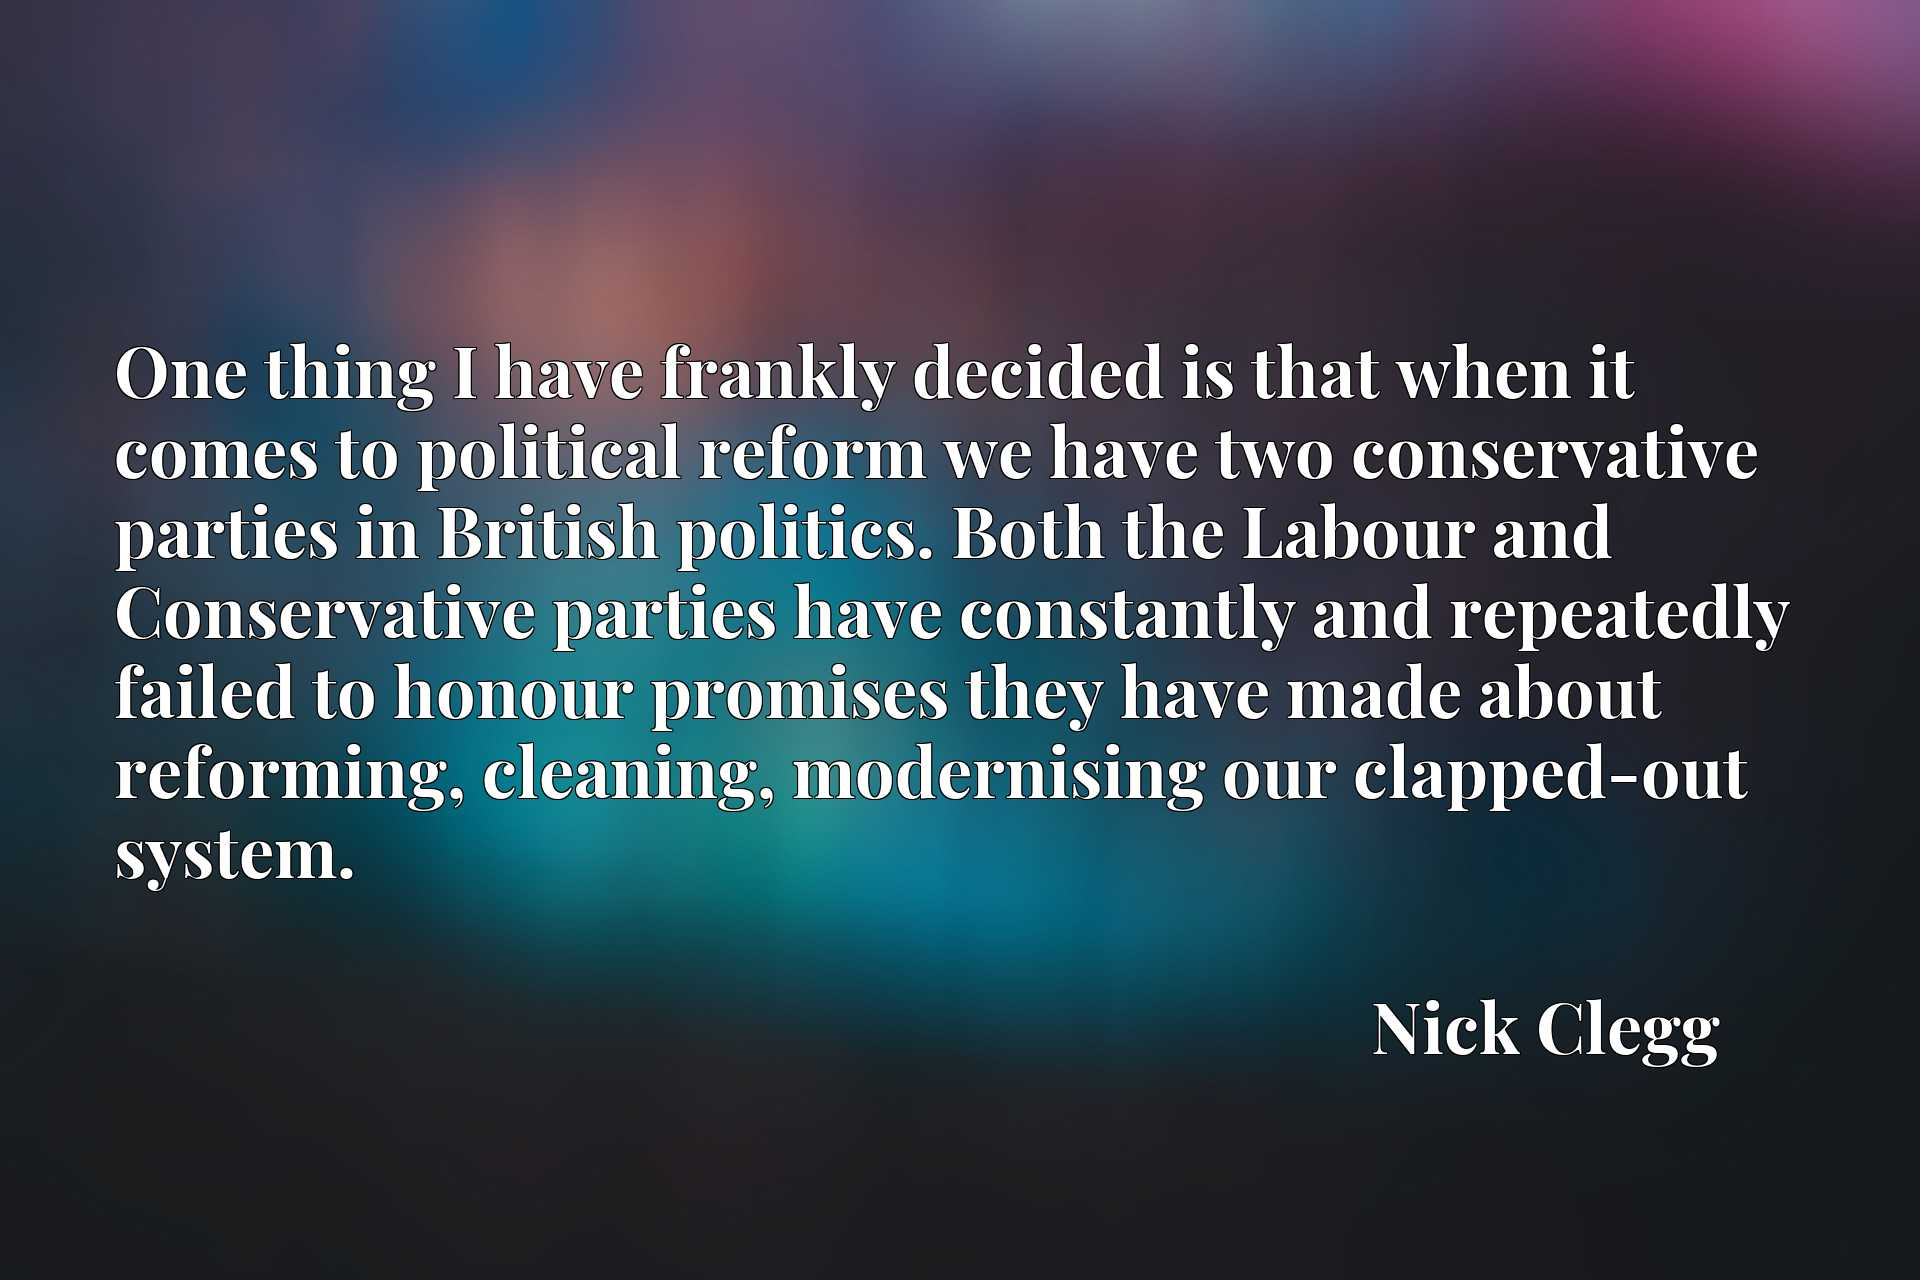 One thing I have frankly decided is that when it comes to political reform we have two conservative parties in British politics. Both the Labour and Conservative parties have constantly and repeatedly failed to honour promises they have made about reforming, cleaning, modernising our clapped-out system.